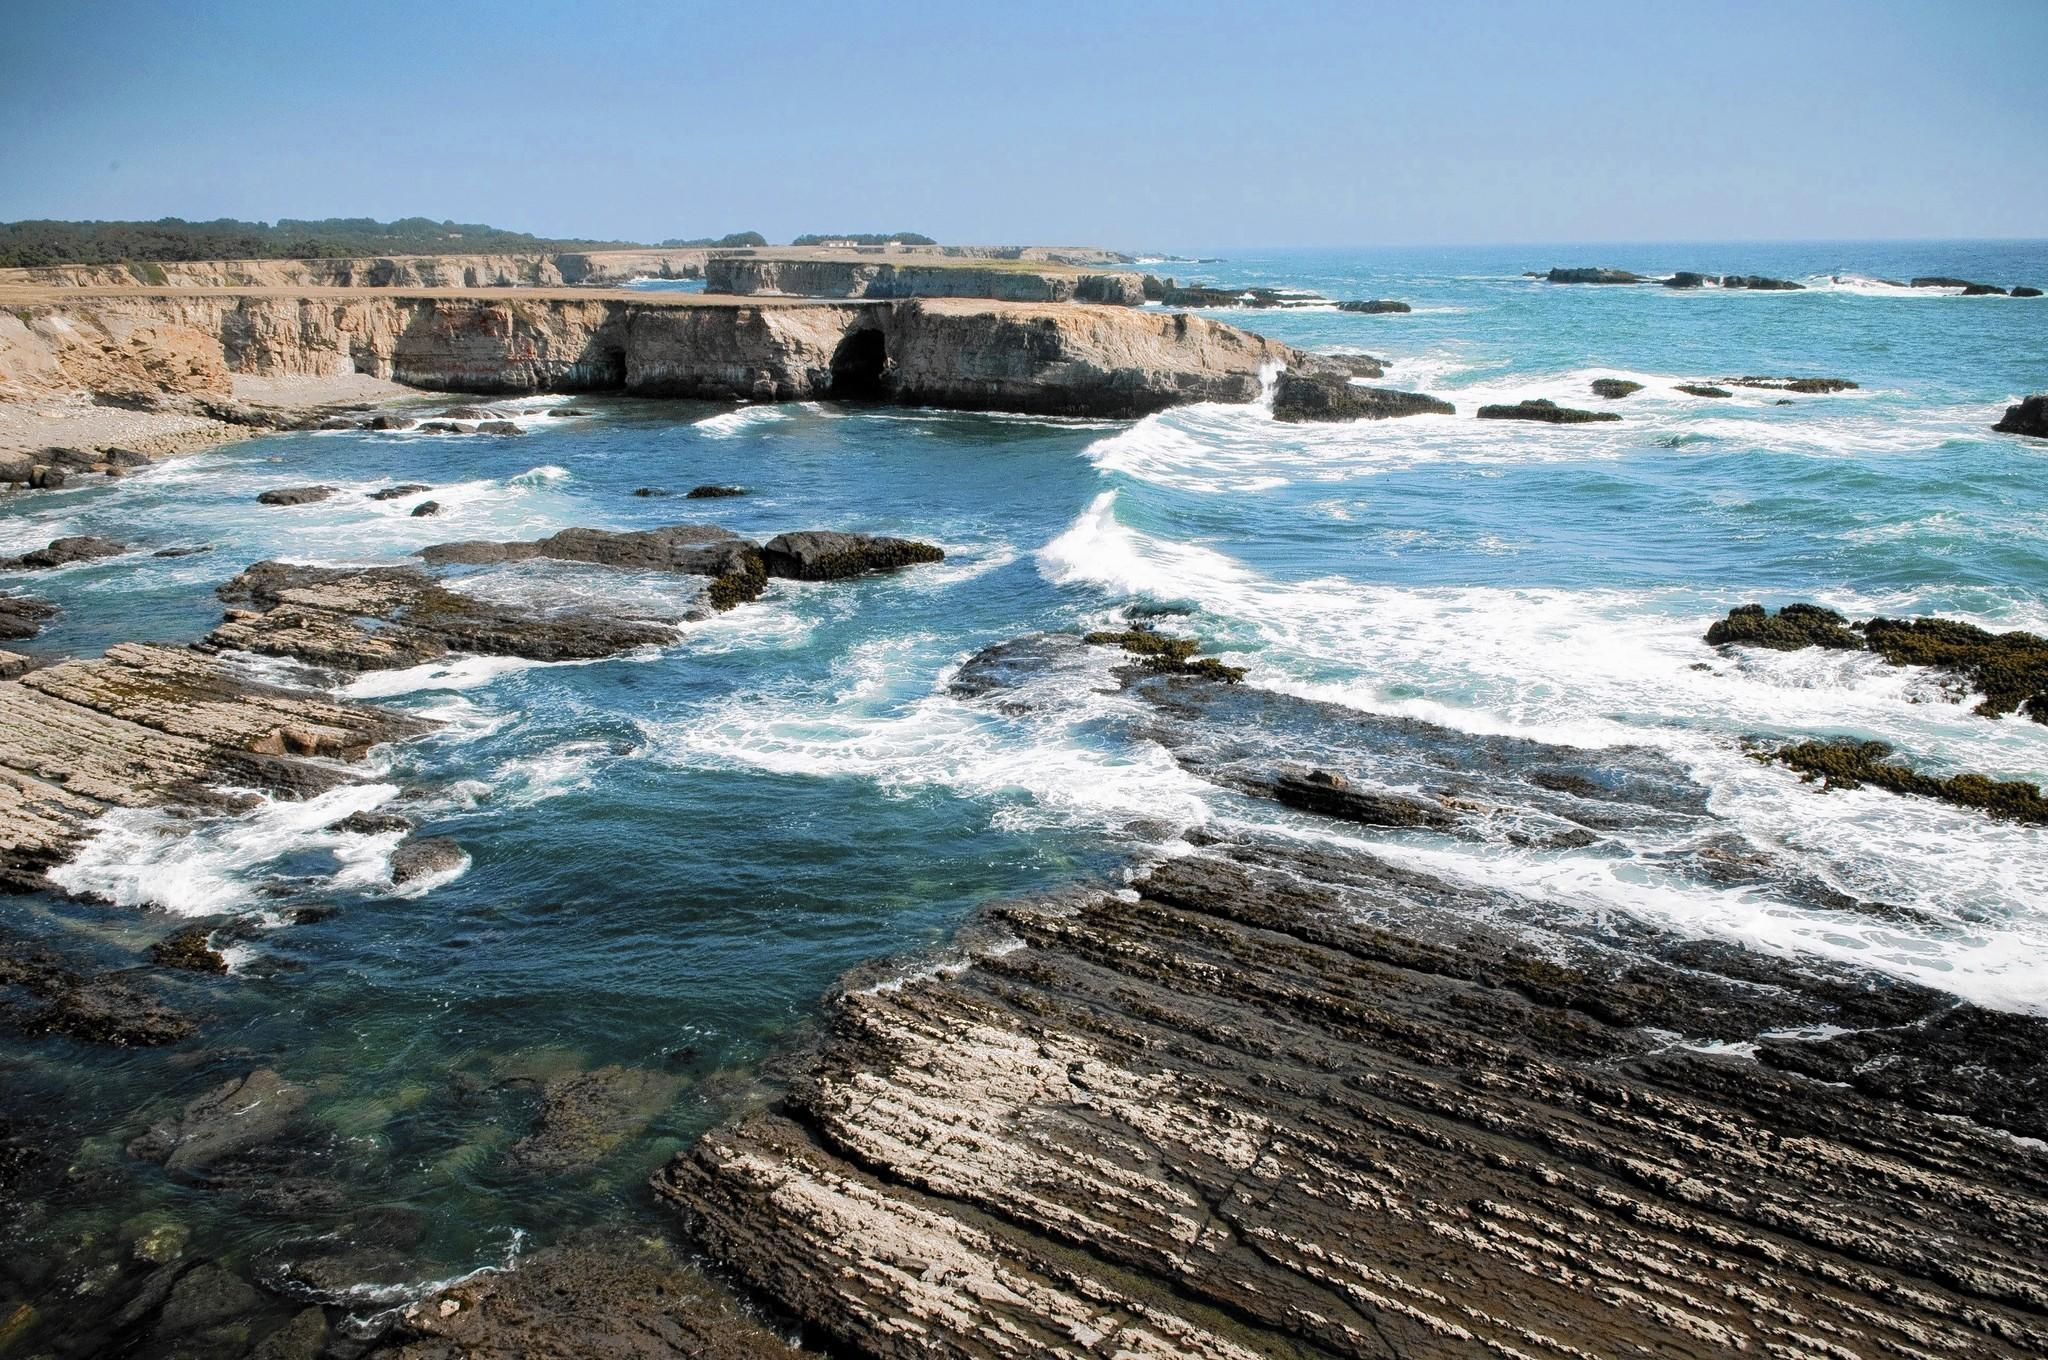 The Stornetta Public Lands are along the Mendocino County coastline just north of the town of Point Arena.